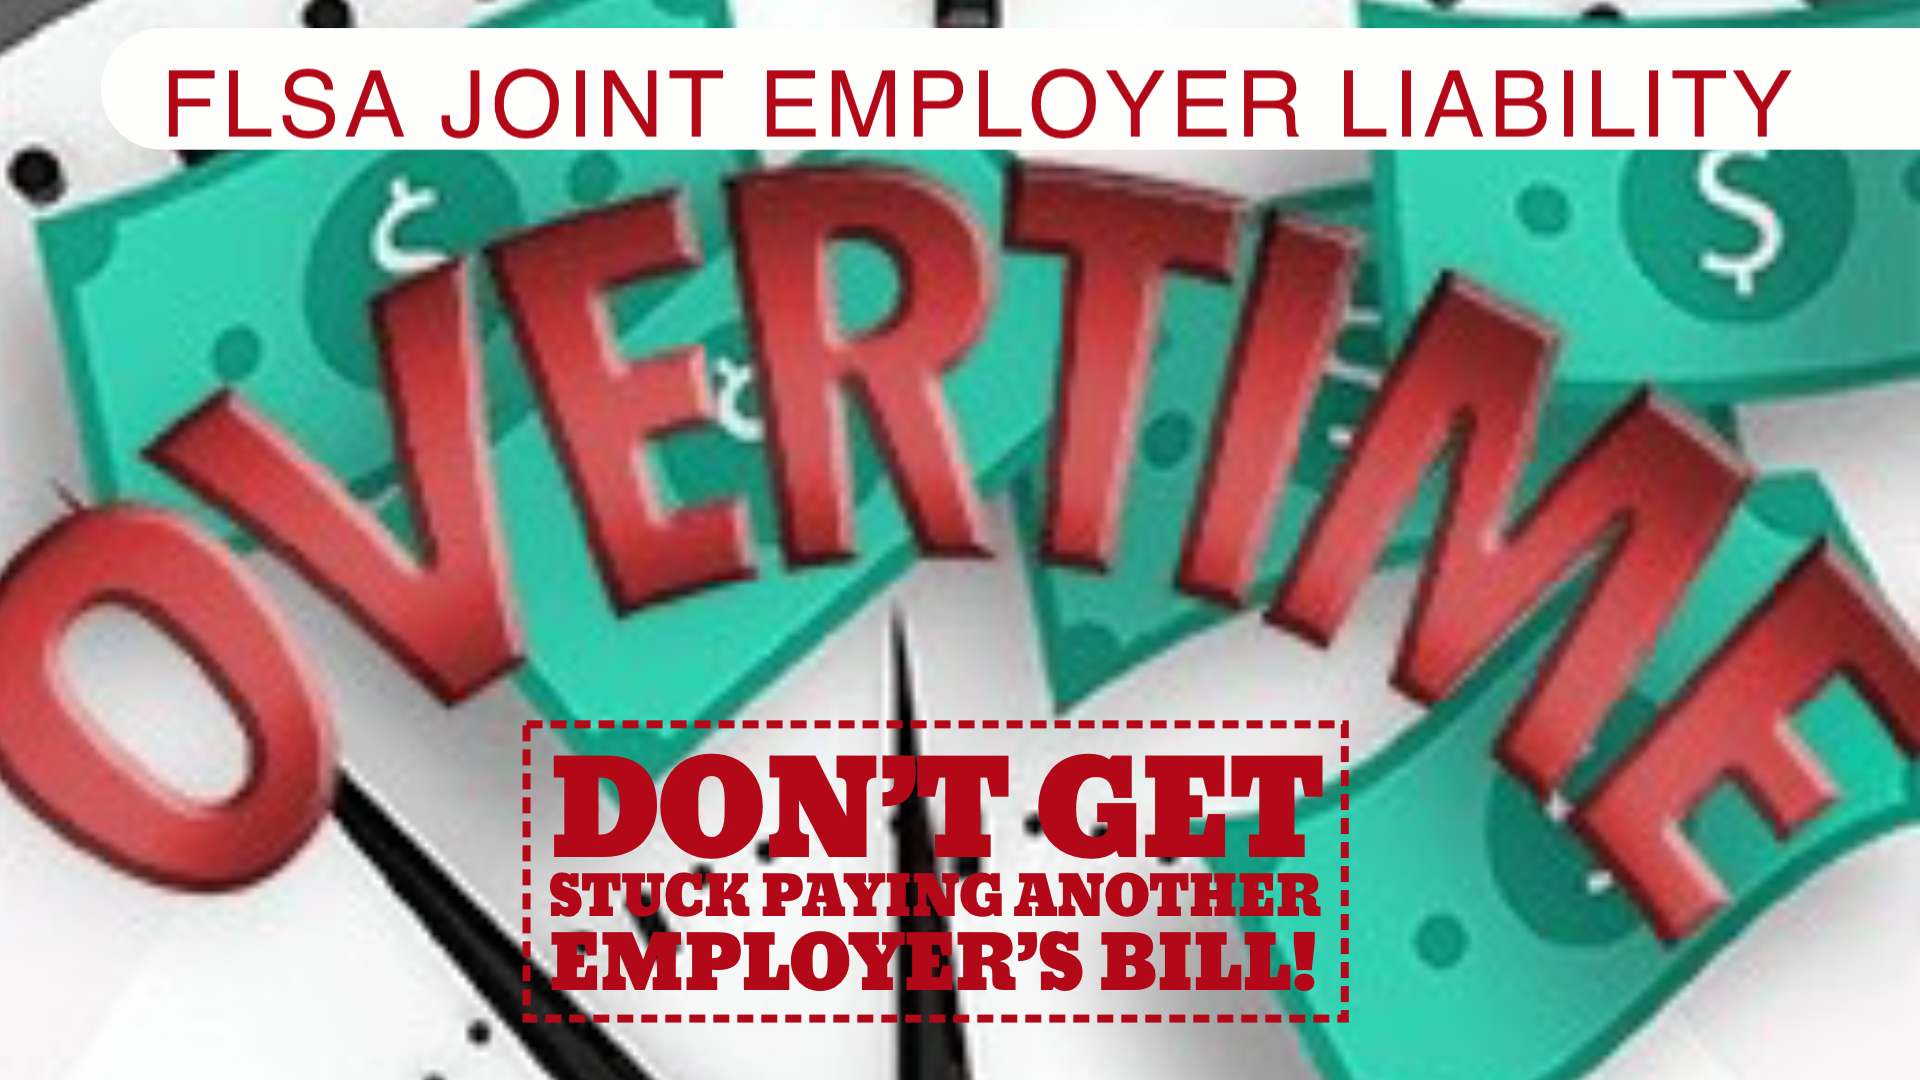 Don't Get Stuck Paying Another Employer's Overtime Or Other Backpay